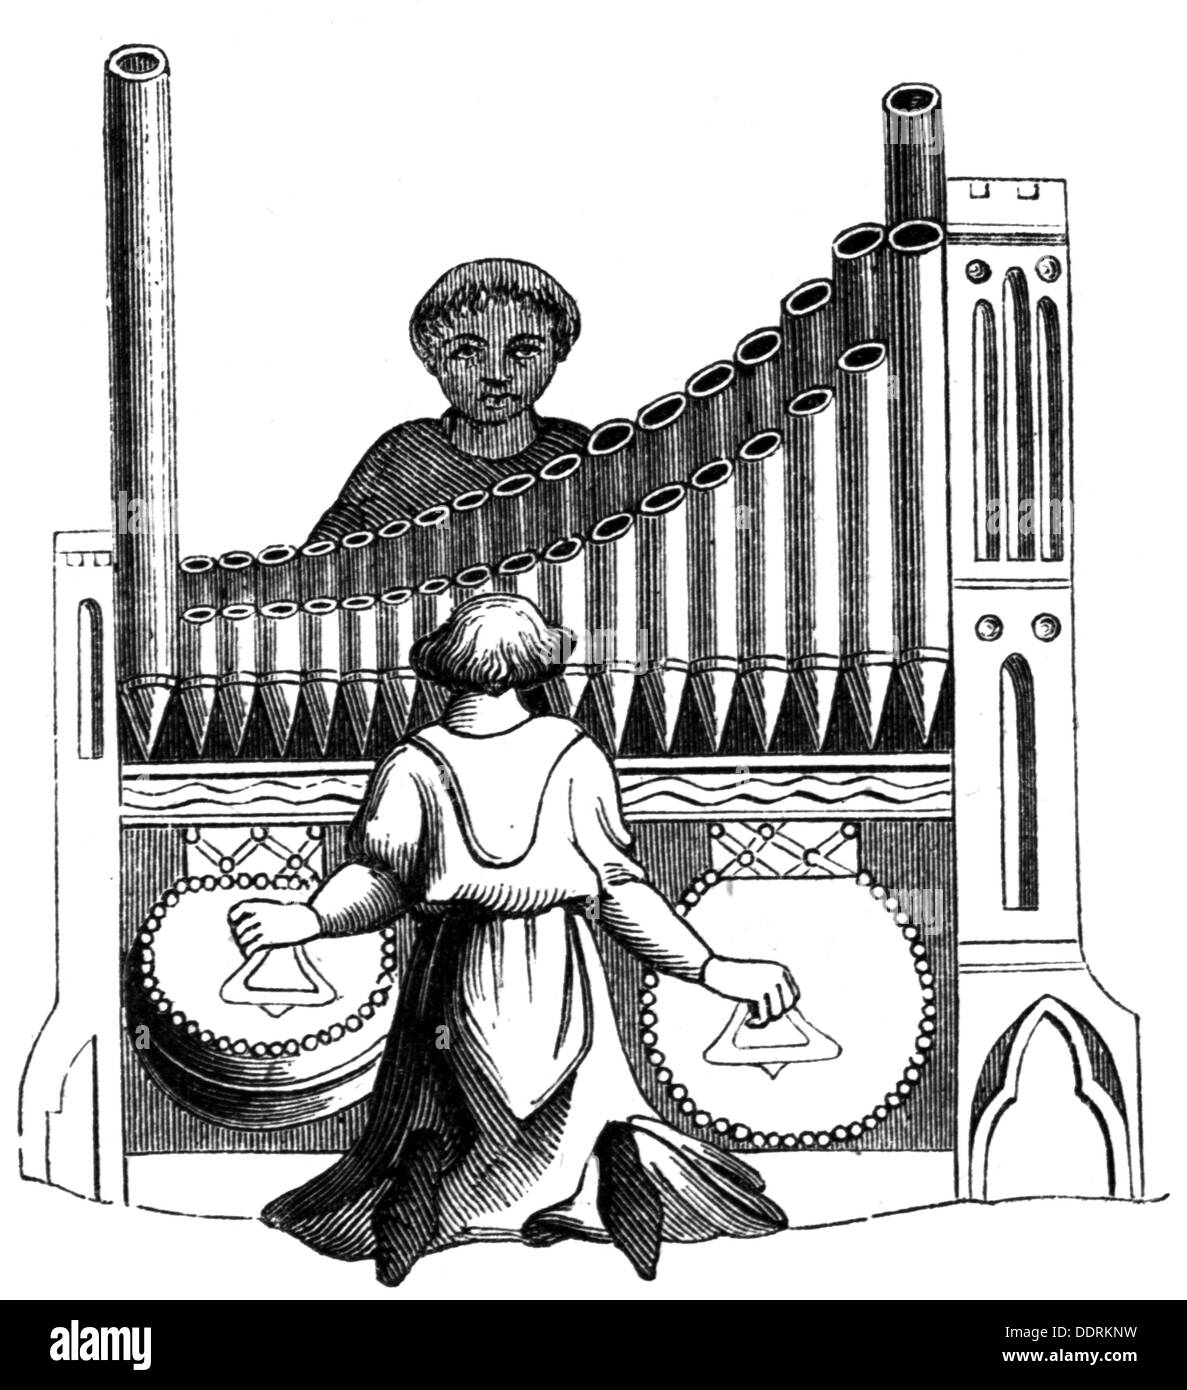 music, instruments, keyboard instrument, organ, after miniature, 14th century, wood engraving, 19th century, organ pipe, organ pipes, musician, musicians, pair of bellows, bag bellow, keyboard instrument, aerophone, Middle Ages, musical instrument, instrument, musical instruments, instruments, people, men, man, male, organ, organs, miniature, miniatures, historic, historical, medieval, Additional-Rights-Clearences-NA - Stock Image